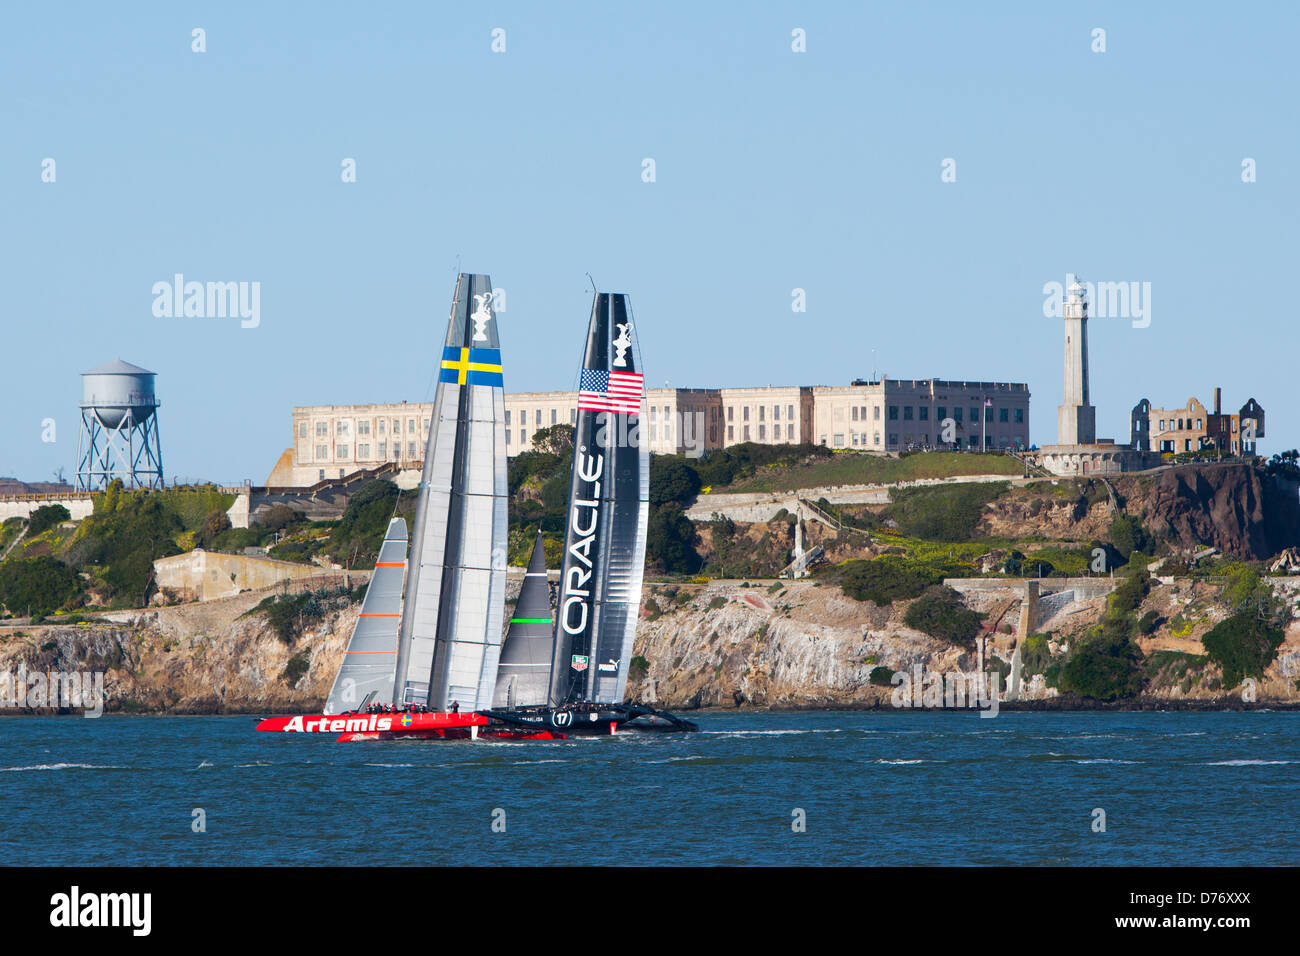 Yachts competing in the America's Cup in 2013 practice in front of Alcatraz, San Francisco, USA - Stock Image